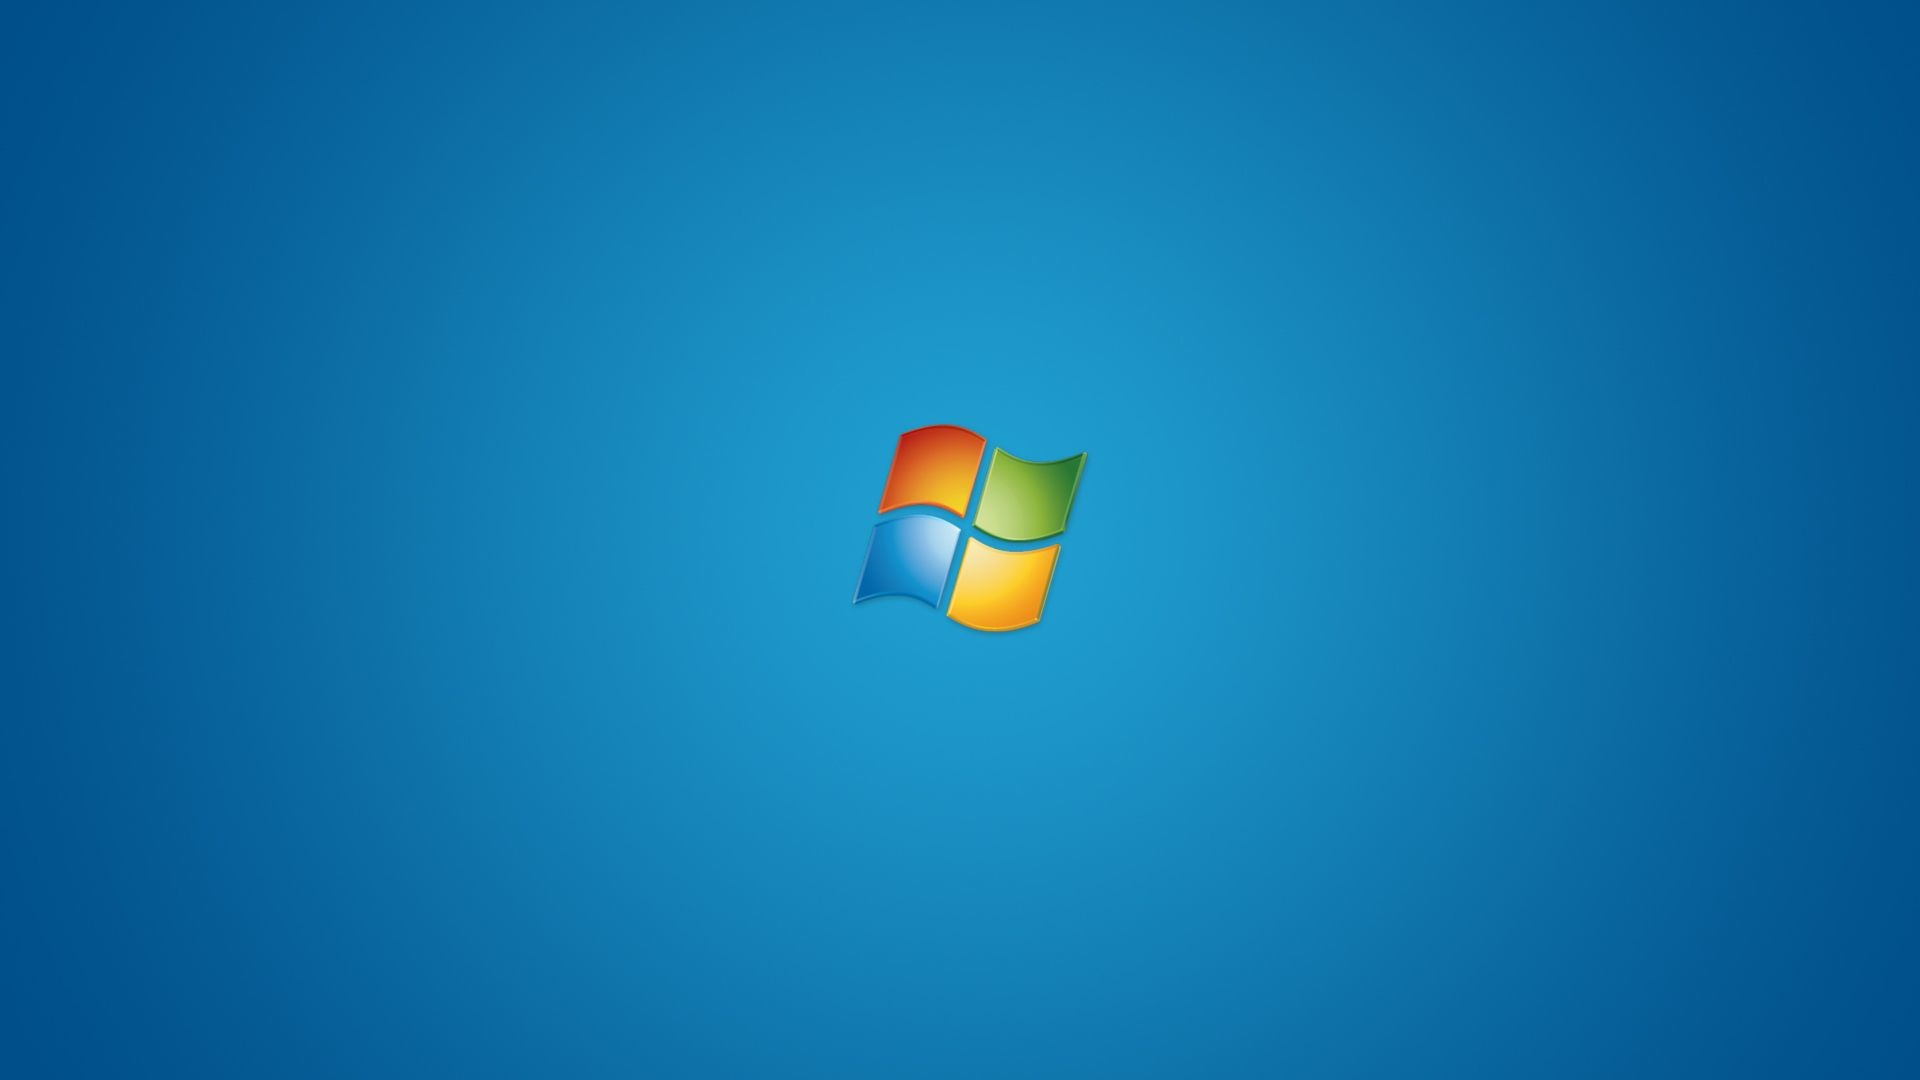 Windows 10 Live Wallpapers HD (55+ images)